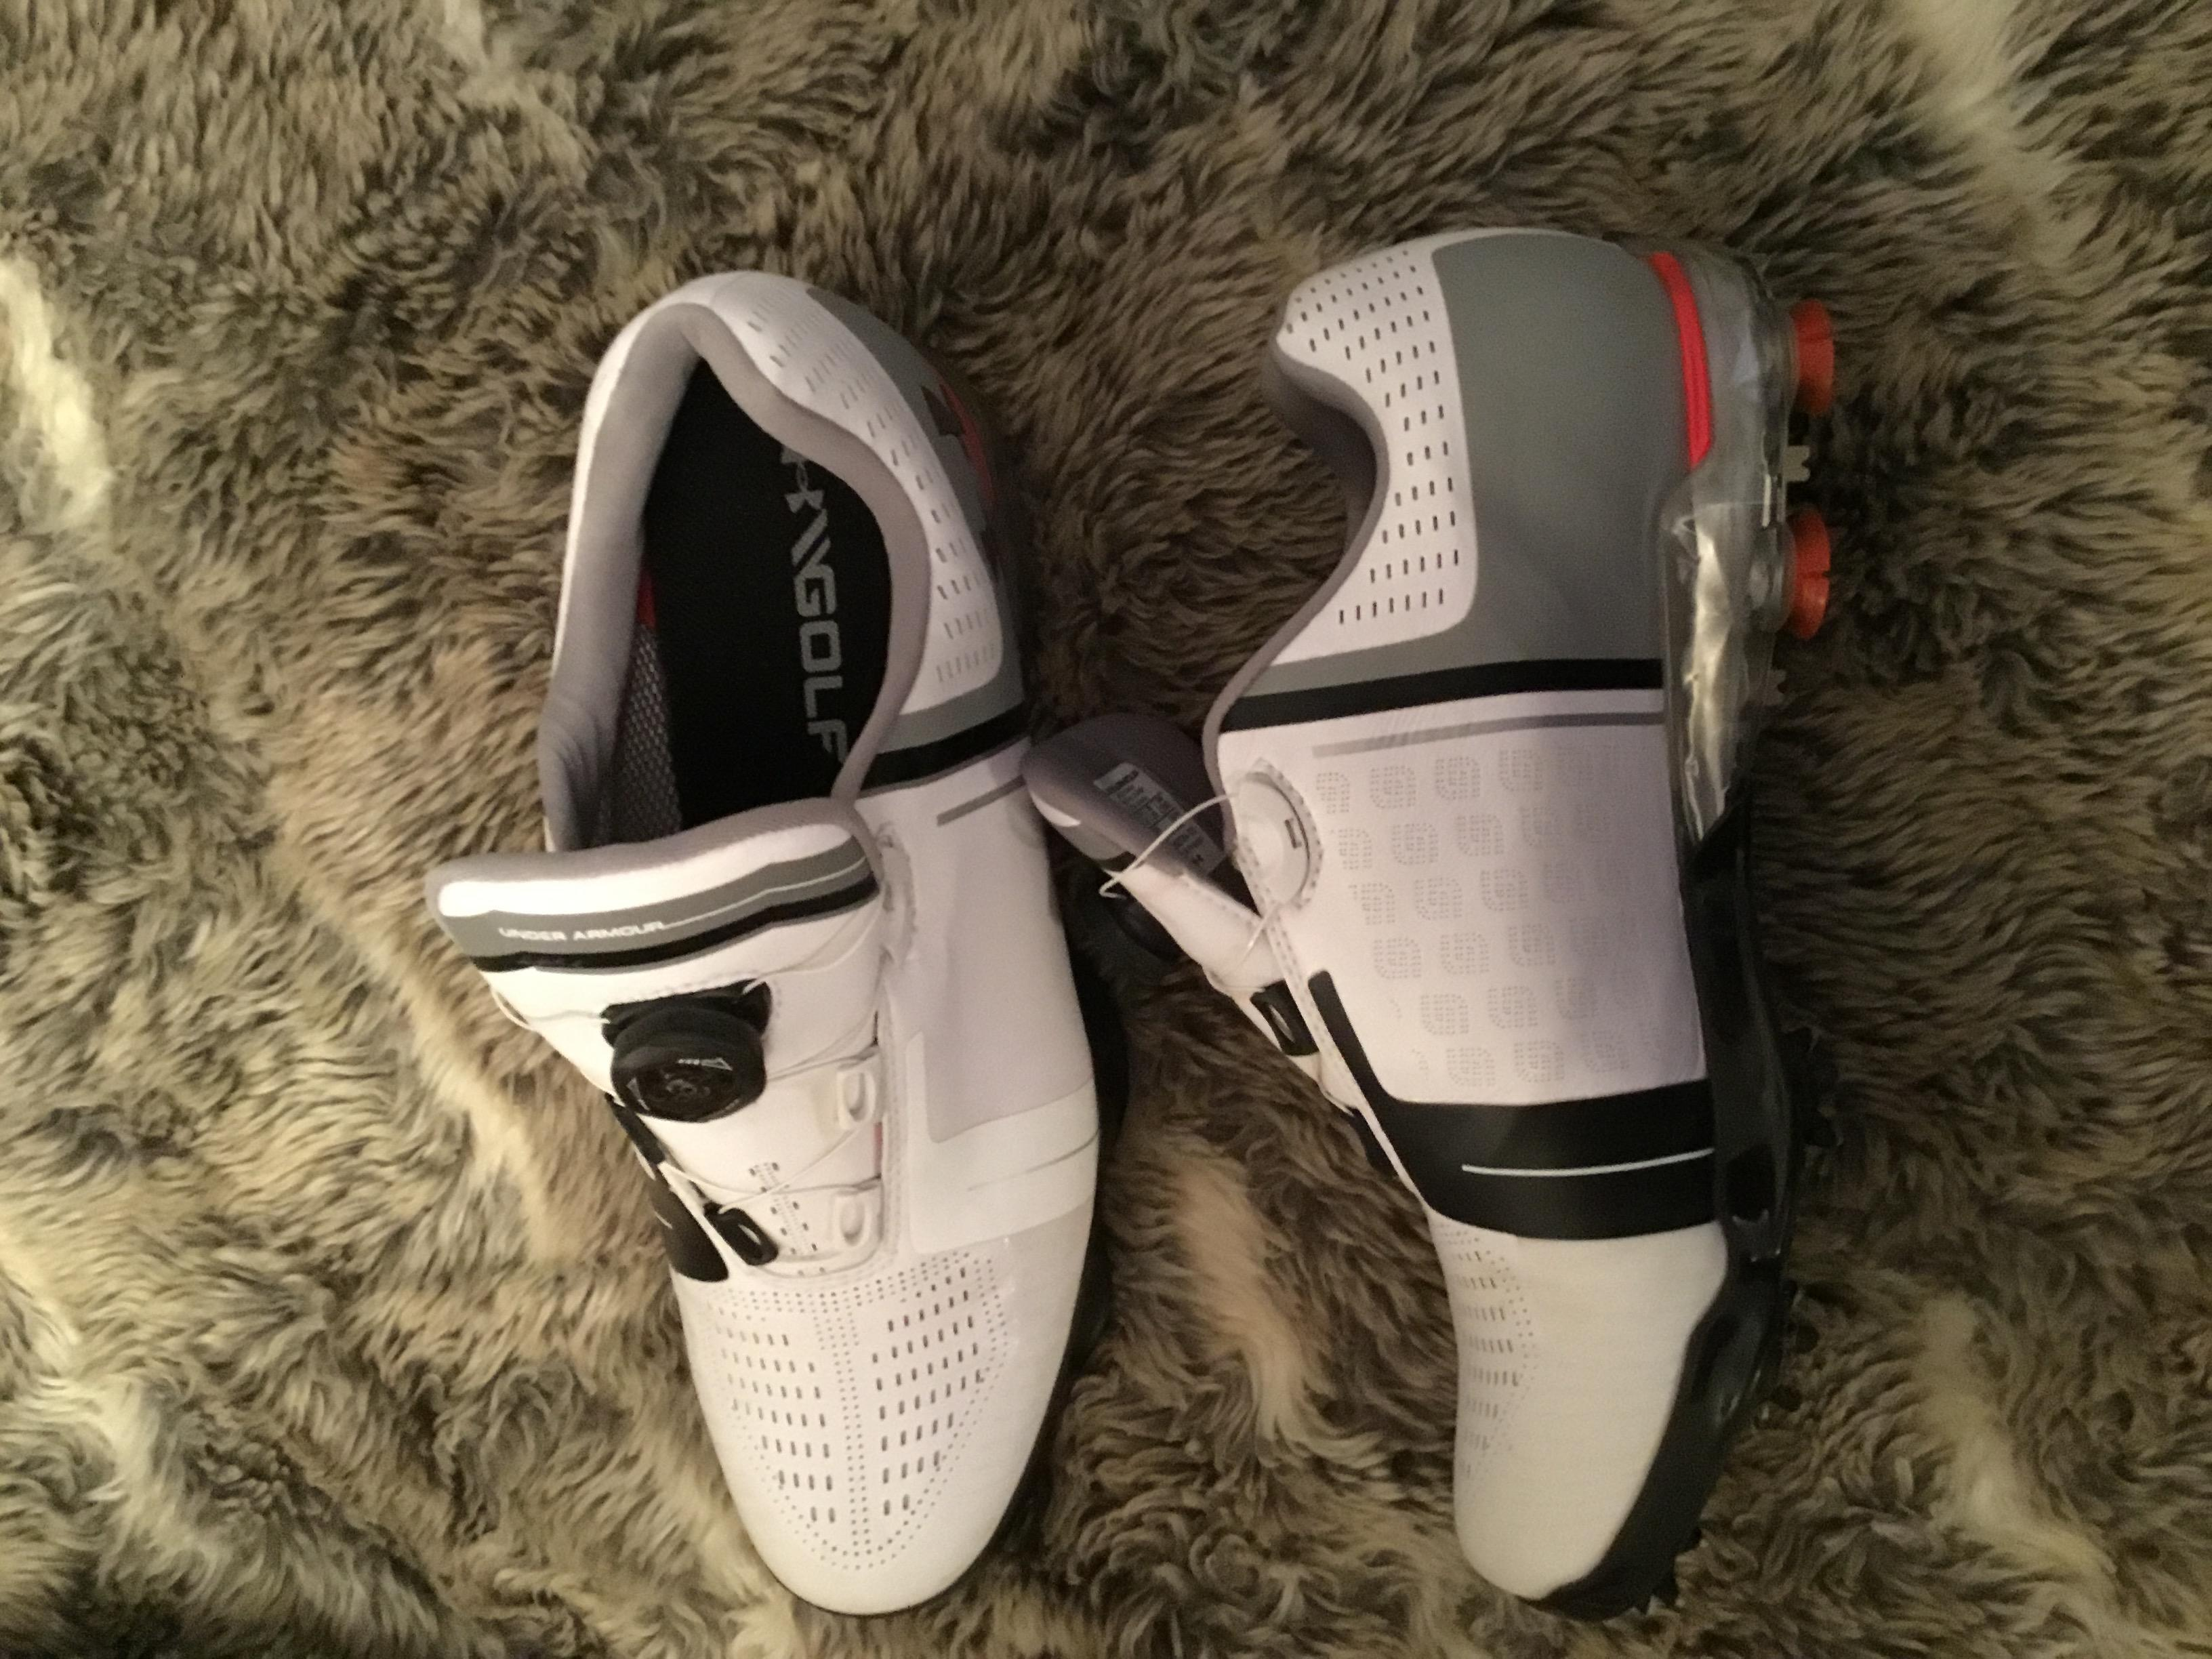 Jordan spieth Boa golf shoes, size 10, comes with footjoy